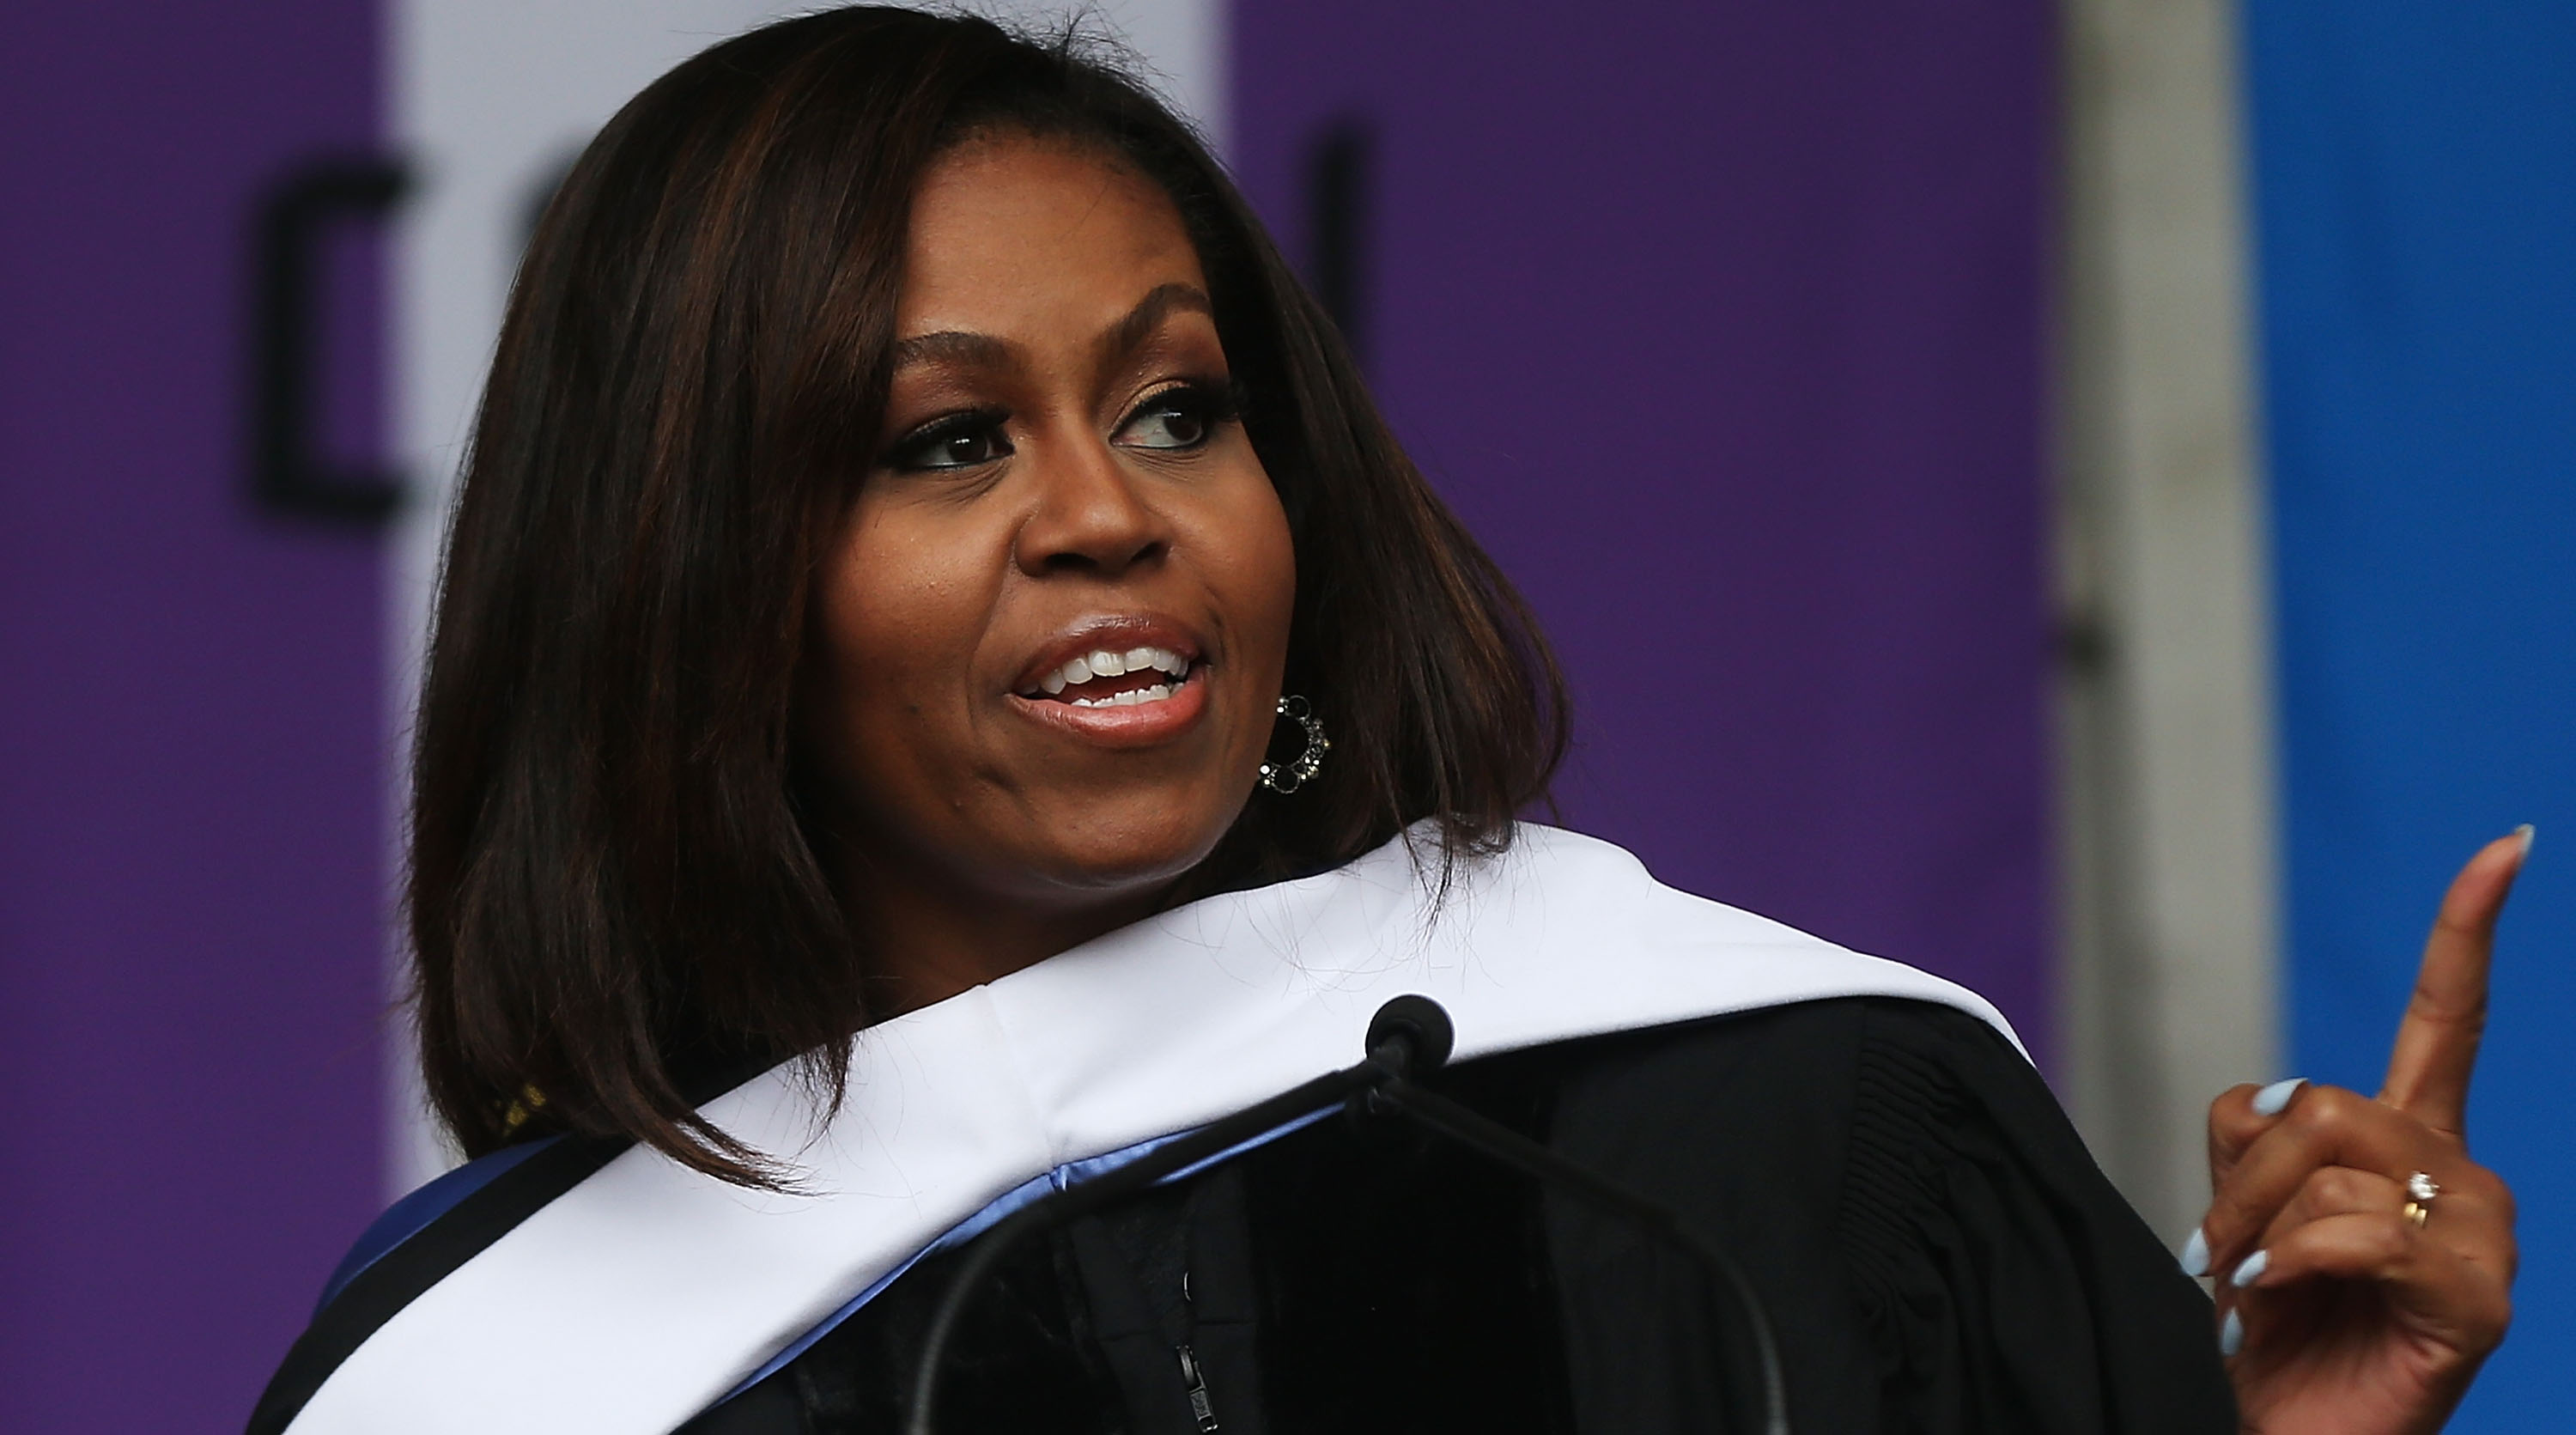 Michelle Obama delivers the commencement speech after being presented with an honorary doctorate of humane letters at City College in New York City on June 3, 2016.